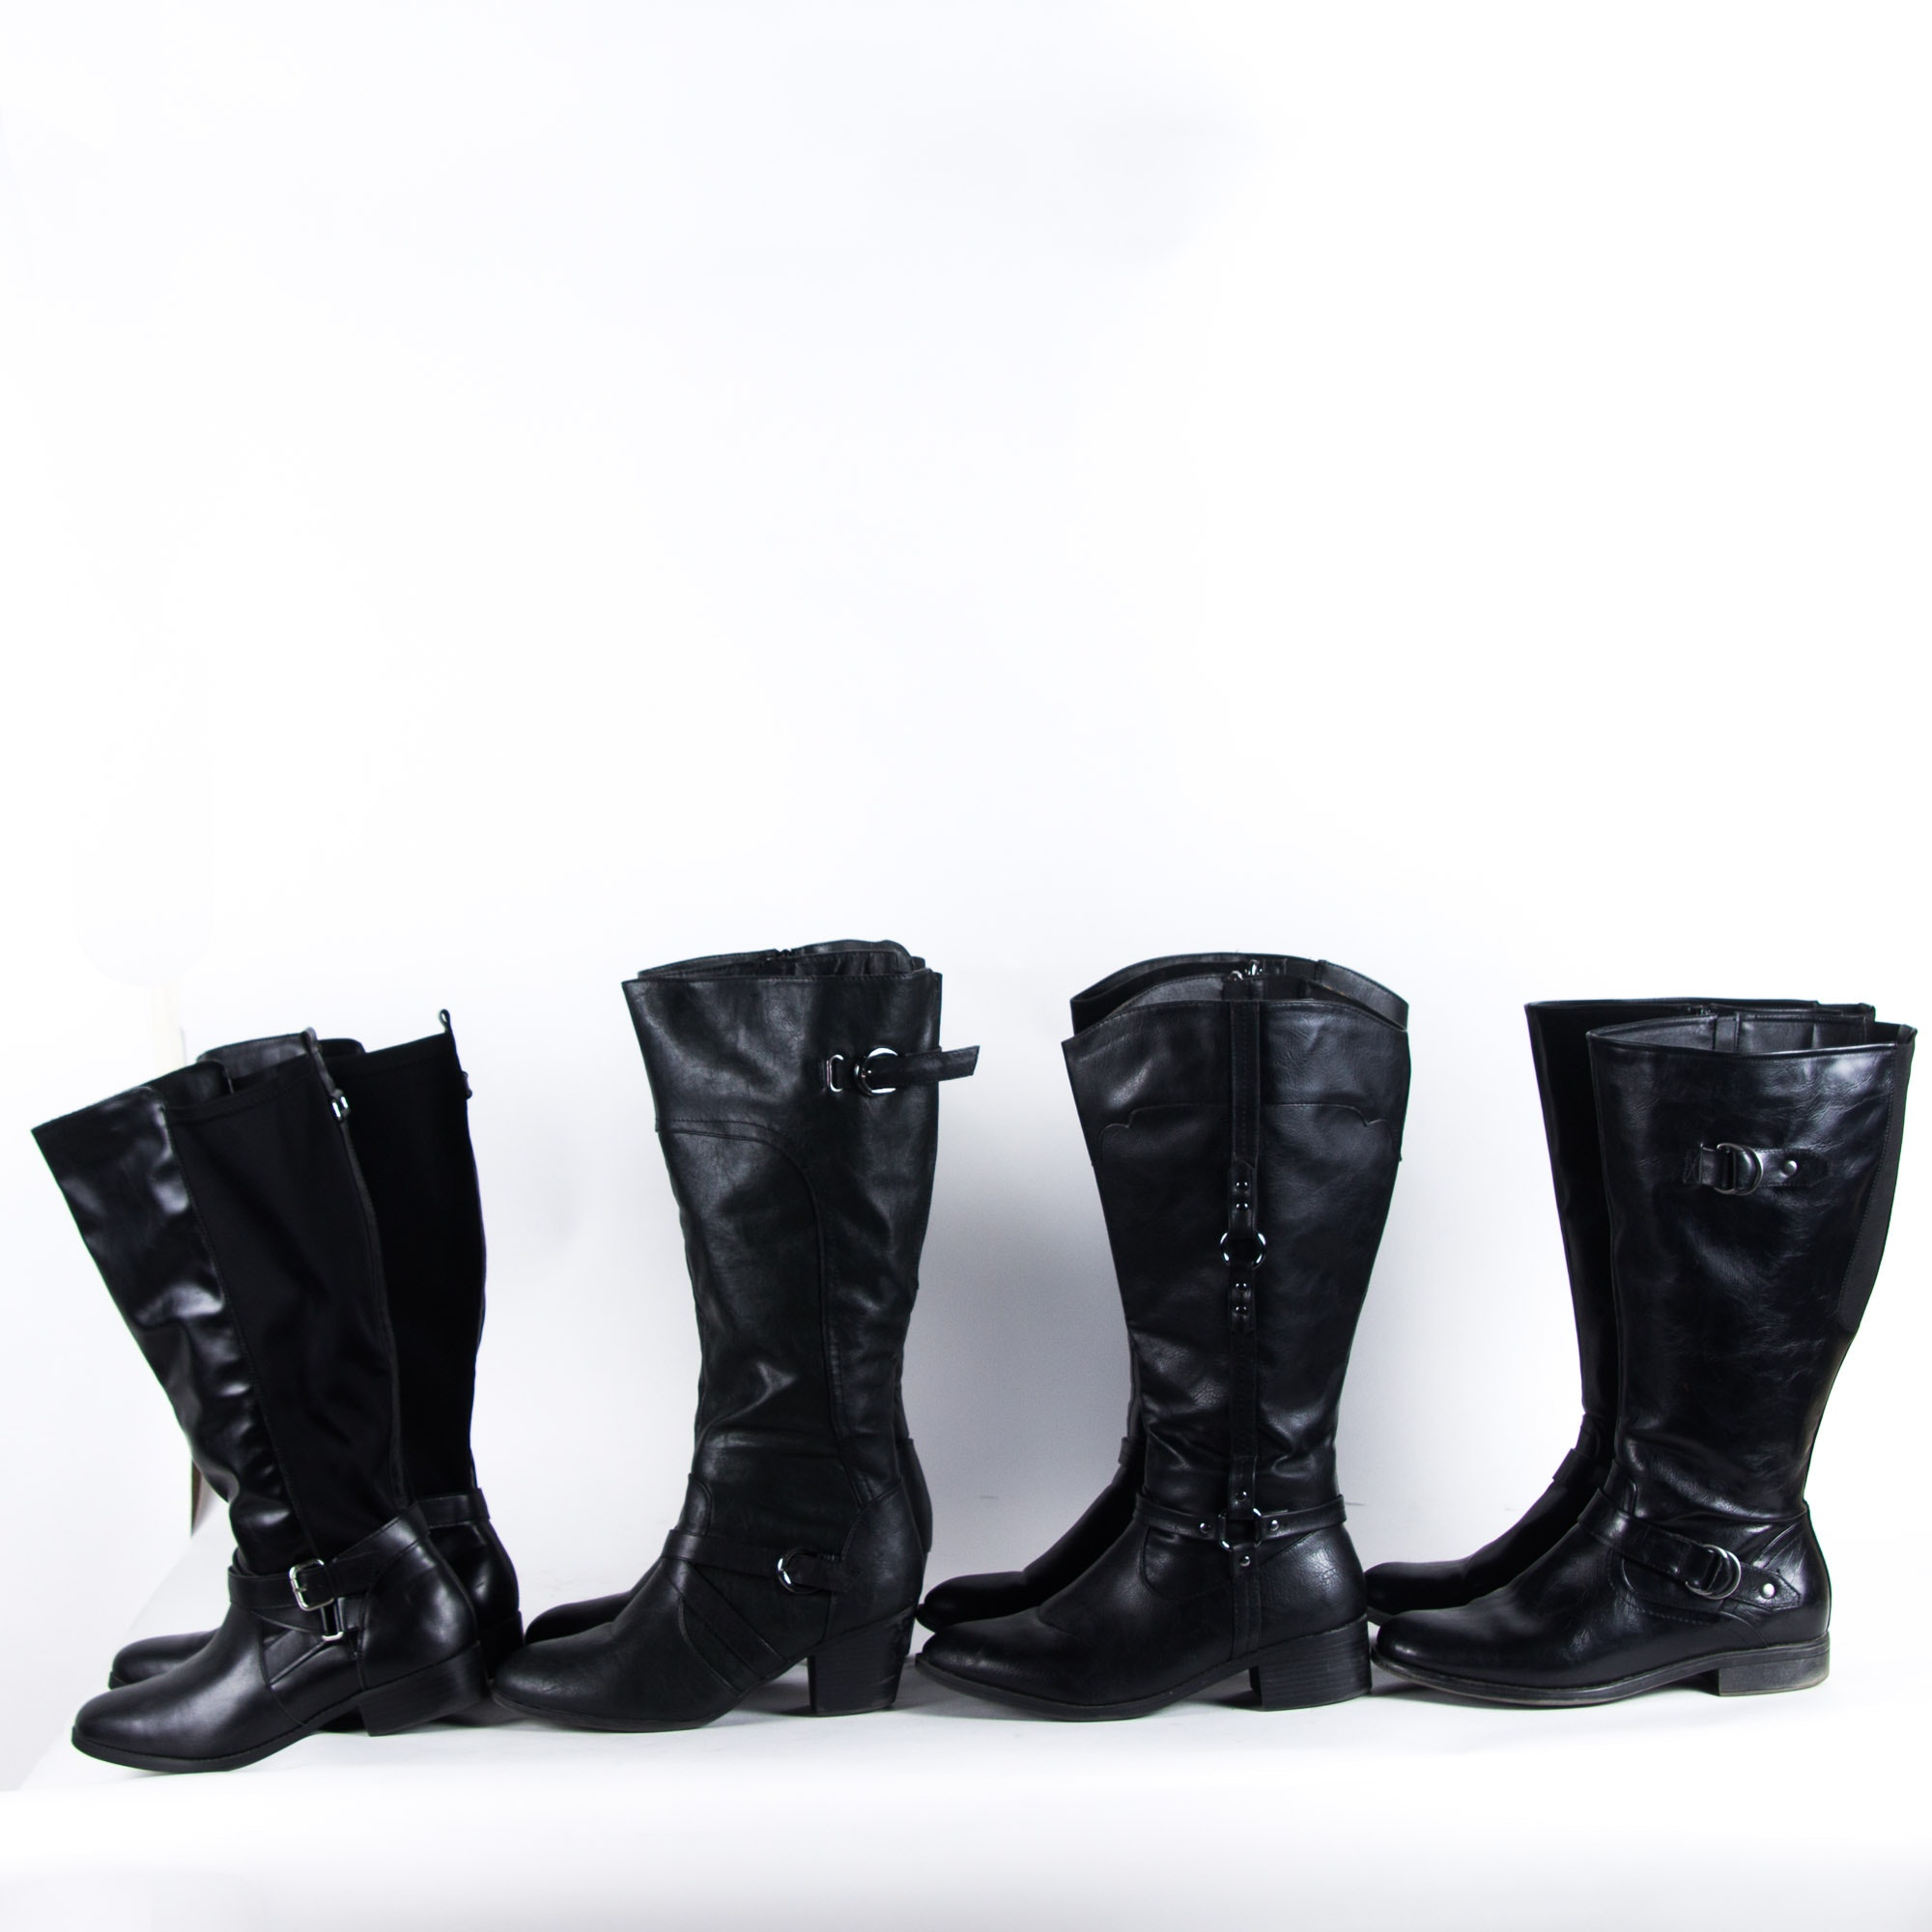 Four Pairs of Women's Faux Leather Boots